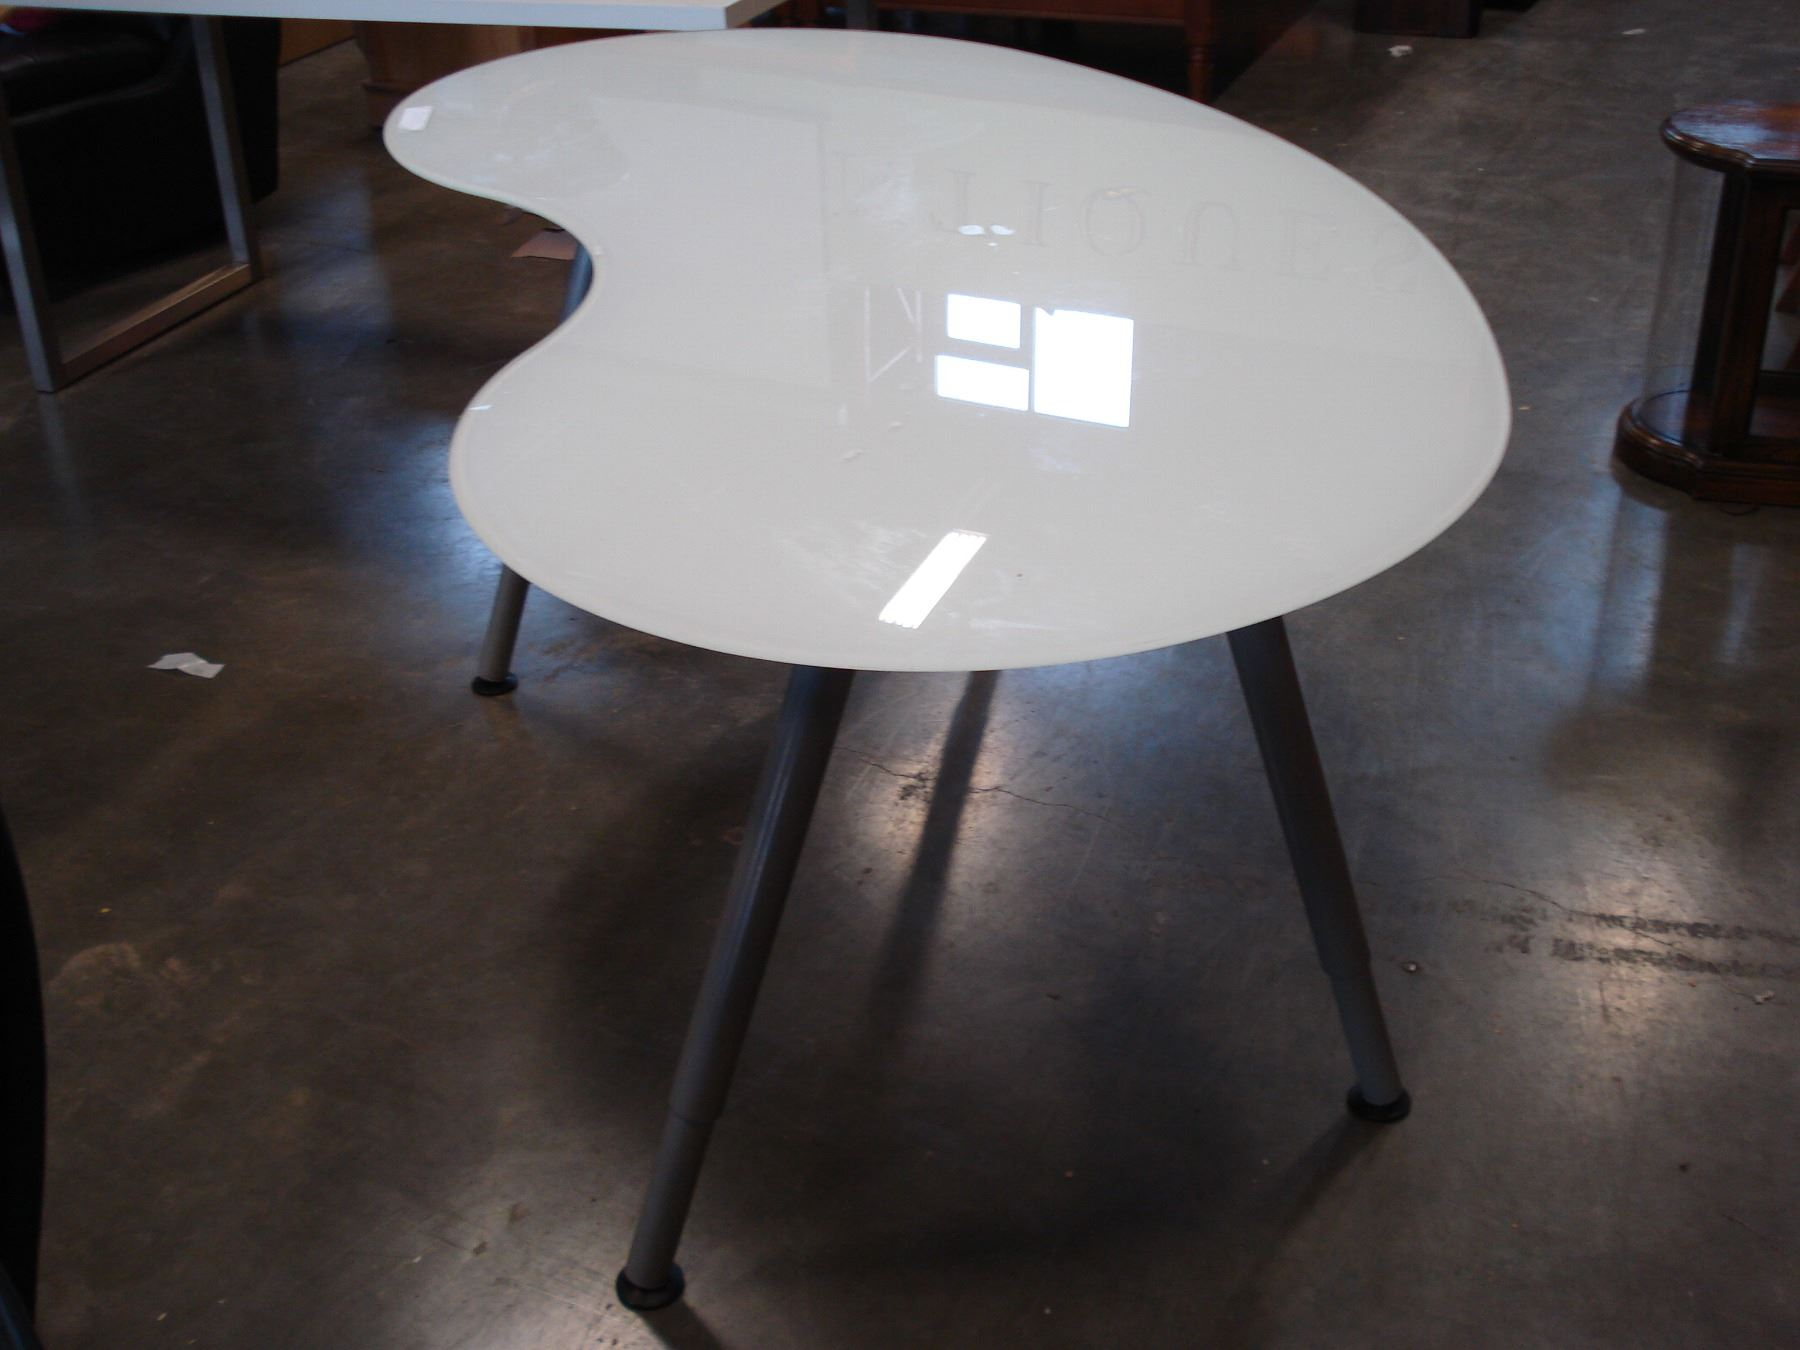 Ikea Kidney Shape Frosted Glass Top Desk With Adjustable Legs